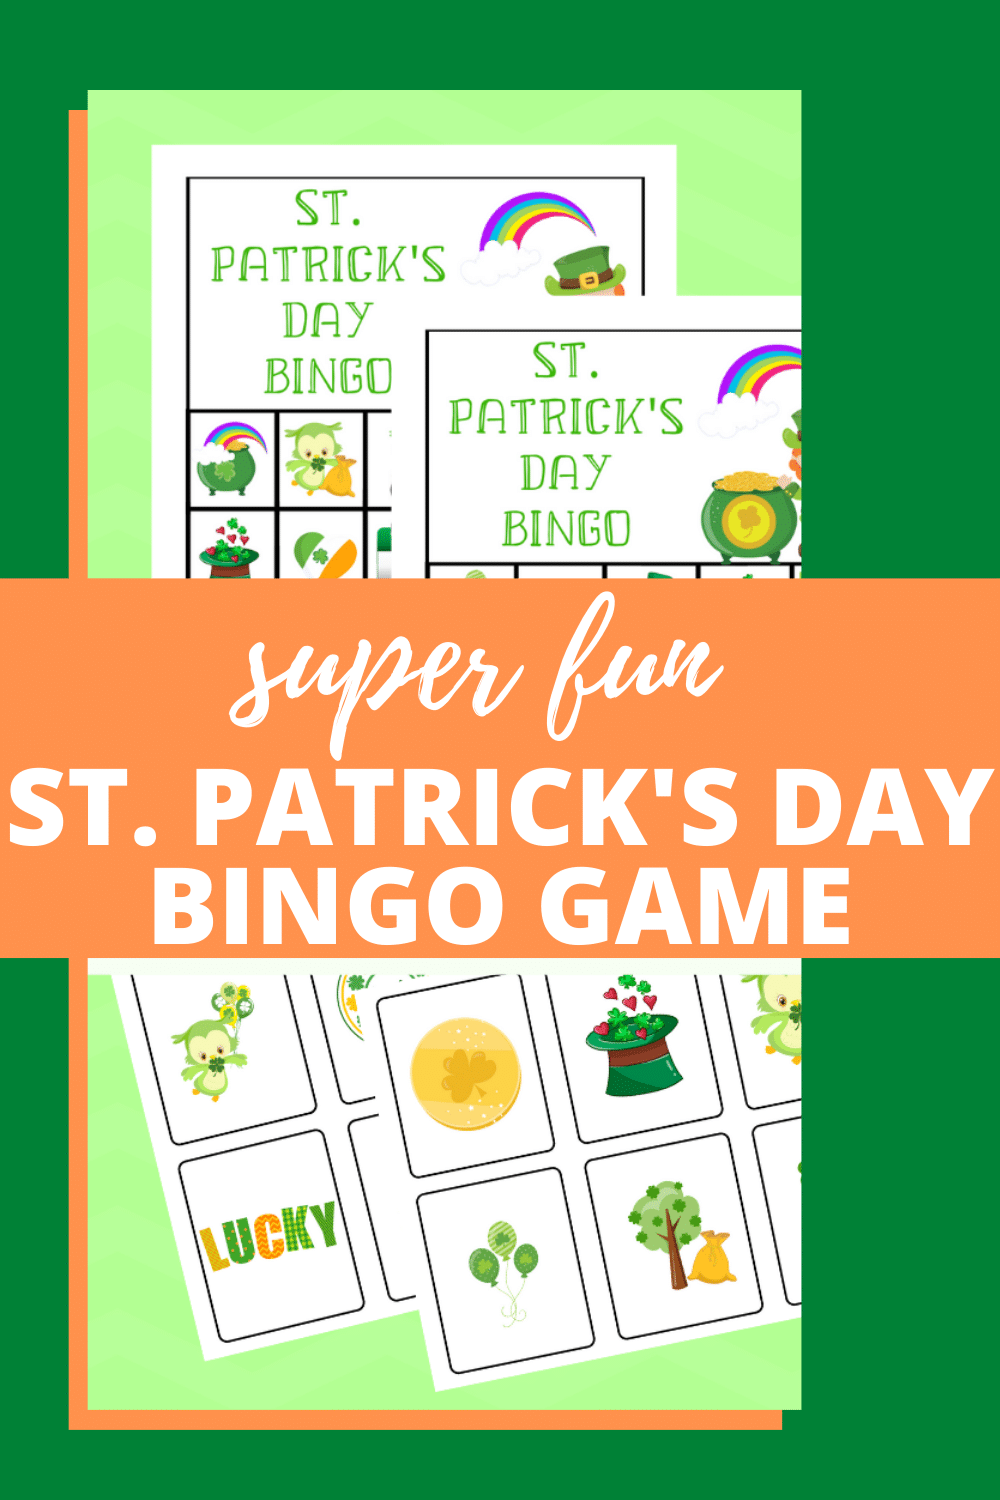 Feeling like trying your luck? The kids are going to love this Free Printable St. Patrick's Day Bingo Game! It's a great family time game! #stpatricksday #bingo #freeprintable #familytime #game via @wondermomwannab